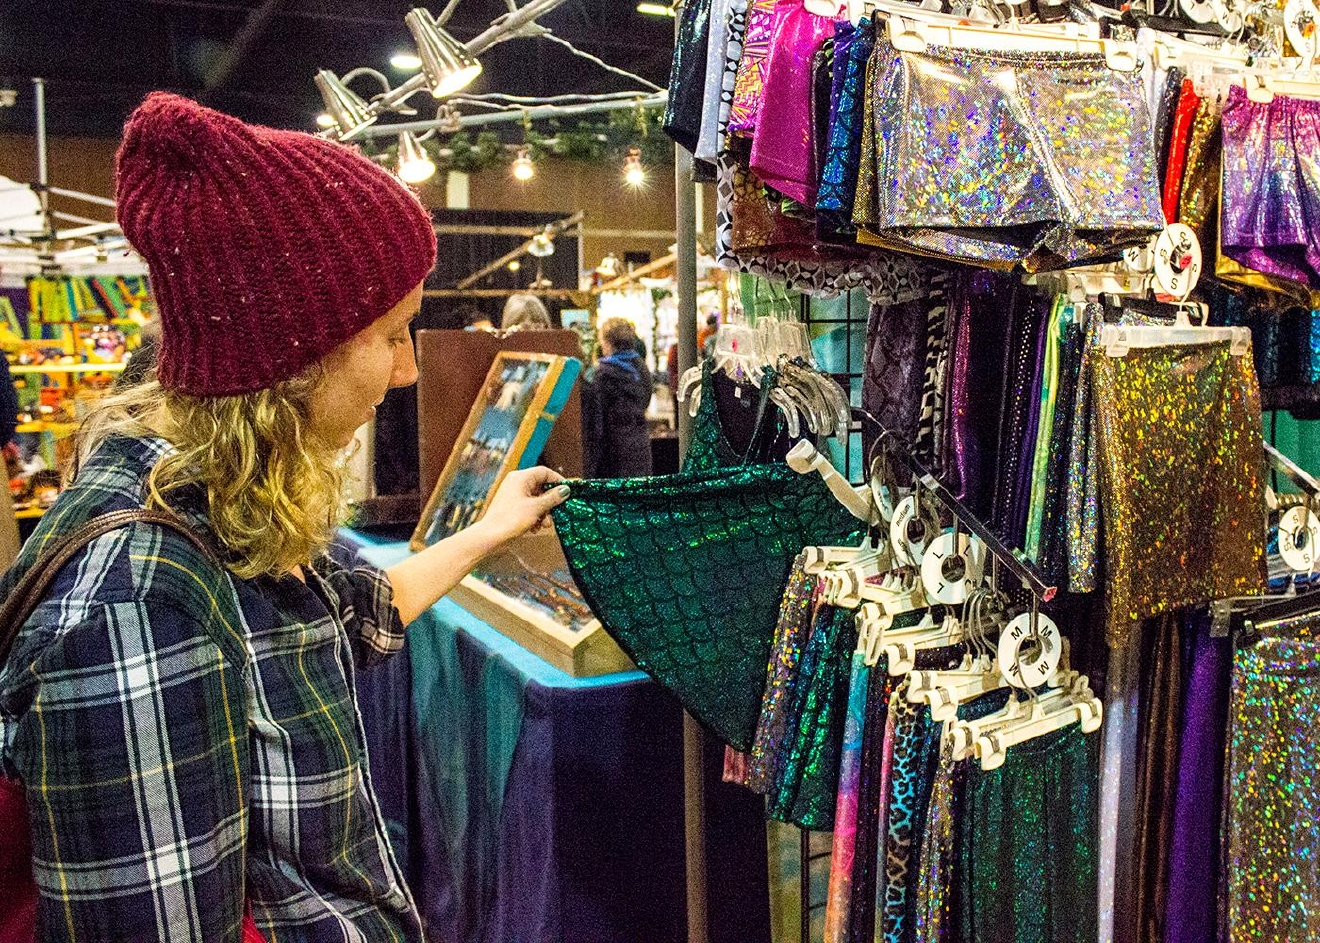 The Eugene Holiday Market at the Lane Events Center in Eugene continues through Christmas Eve, open 10 a.m. to 6 p.m. Friday and Saturday and until 4 p.m. Sunday. (Amanda Butt/SBG, 2016)